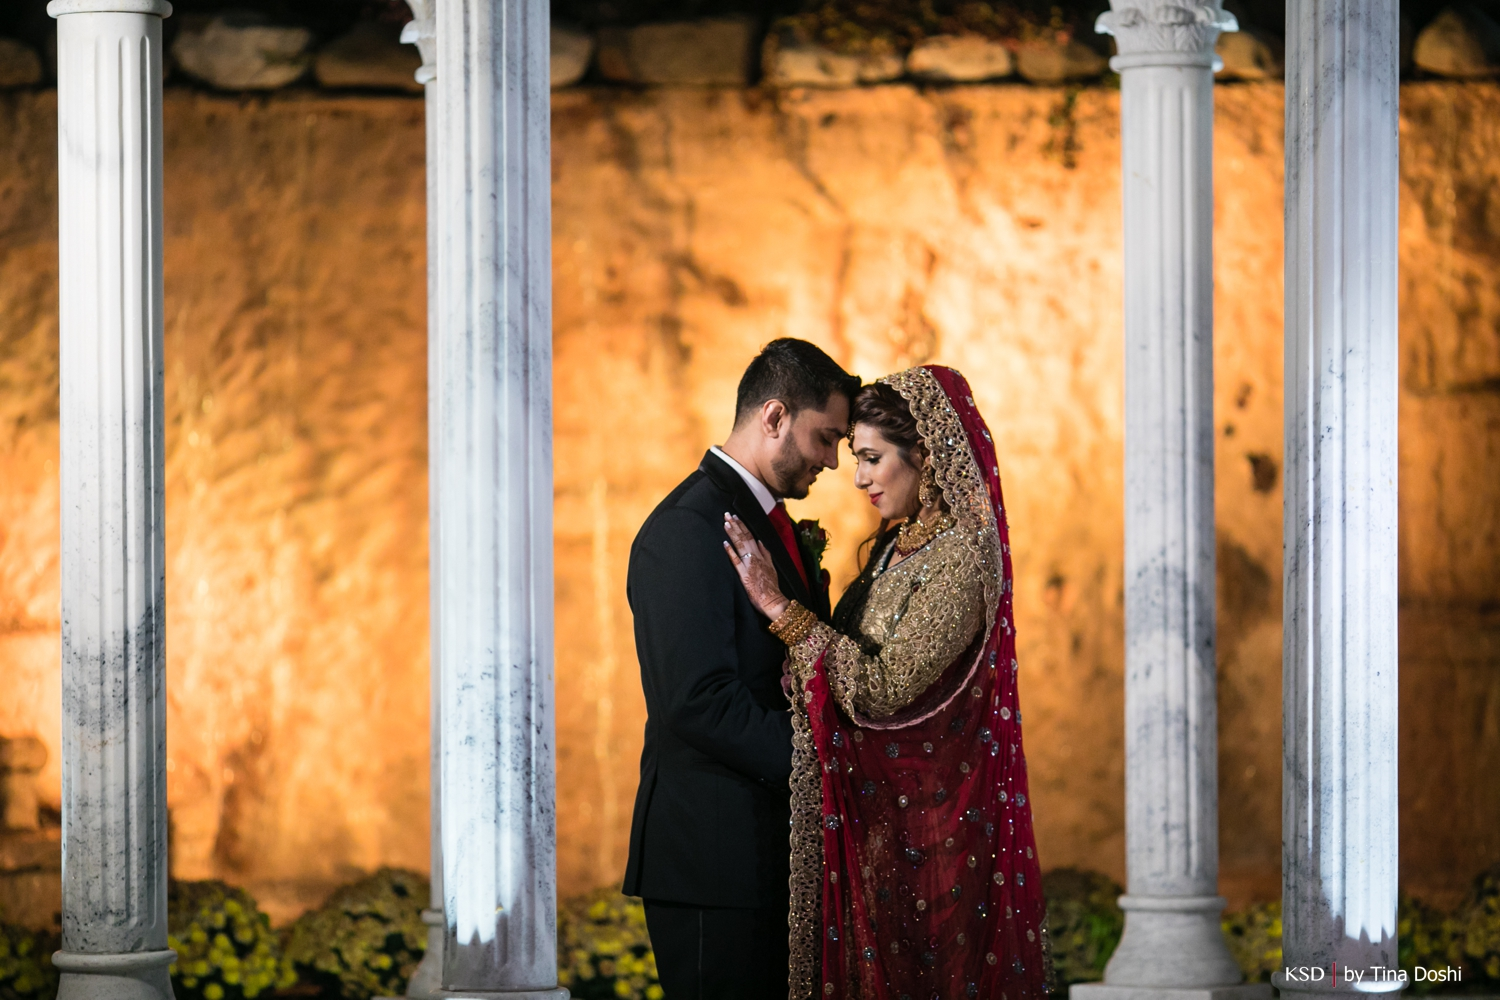 nj_south_asian_wedding_0091